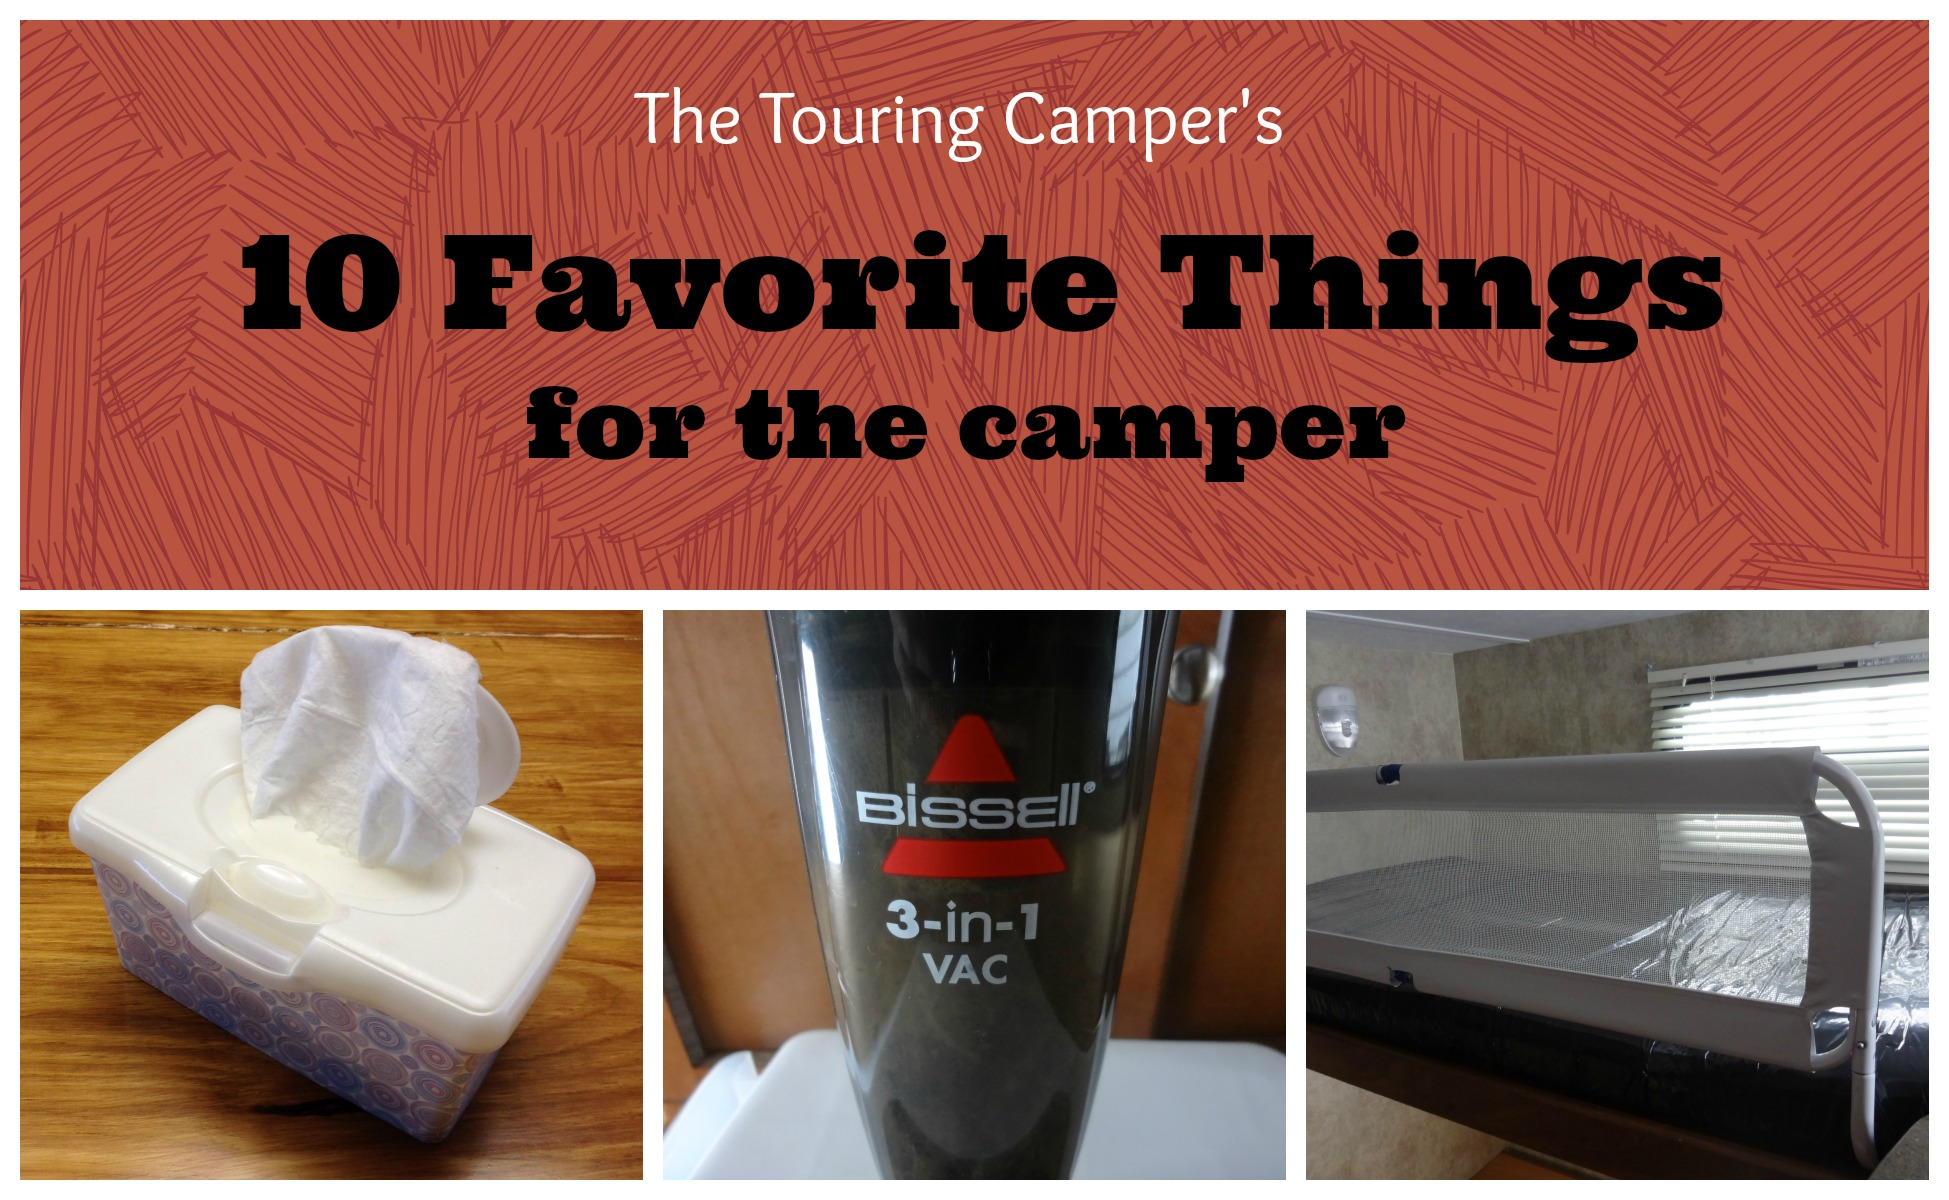 10 Favorite Things for the camper